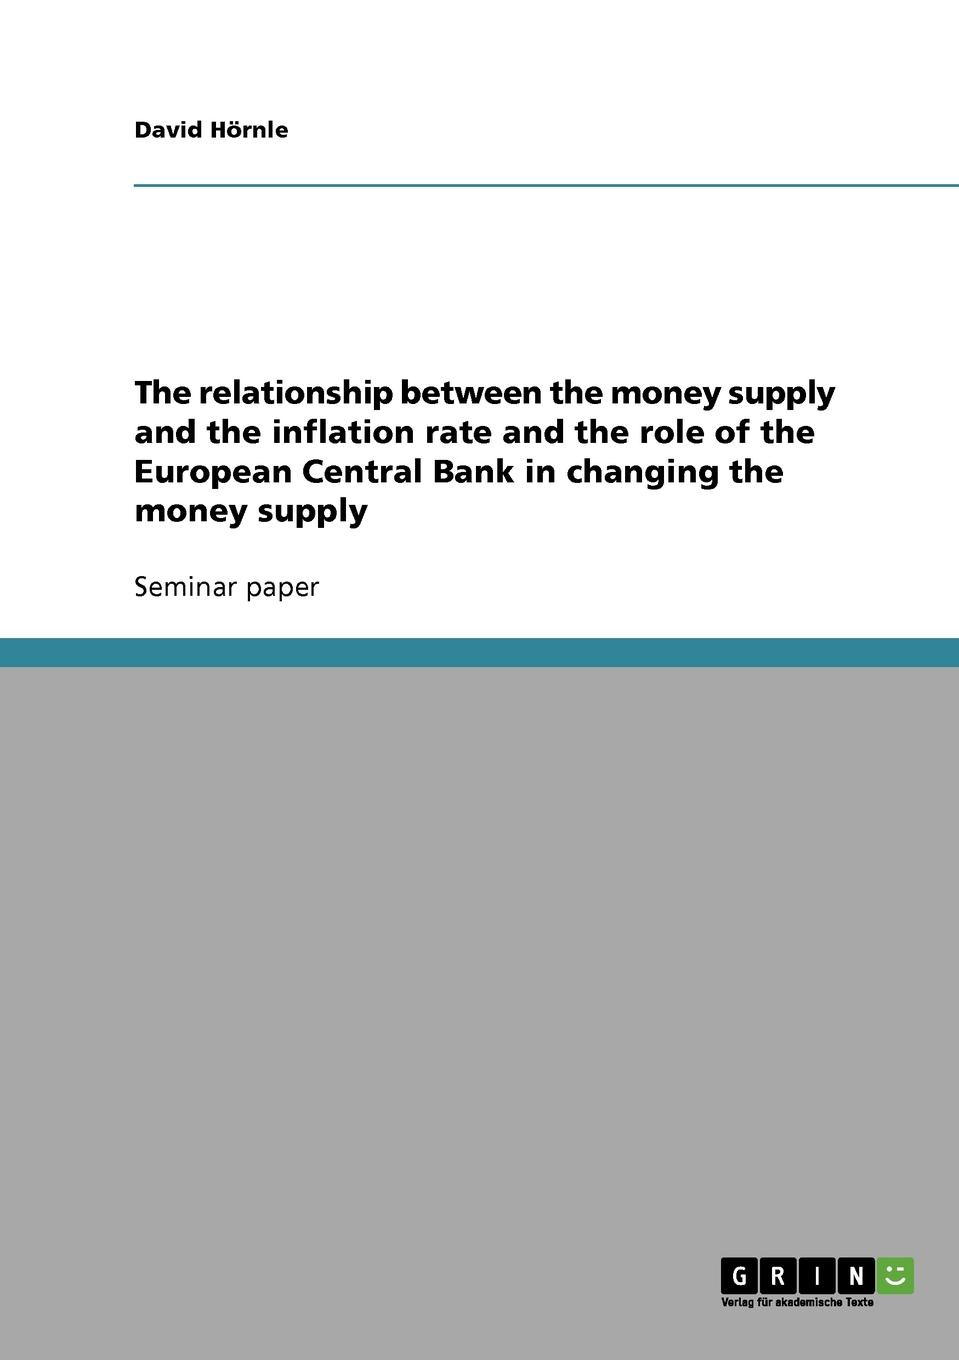 David Hörnle The relationship between the money supply and the inflation rate and the role of the European Central Bank in changing the money supply nara françoise monkam the money moving syndrome and the effectiveness of